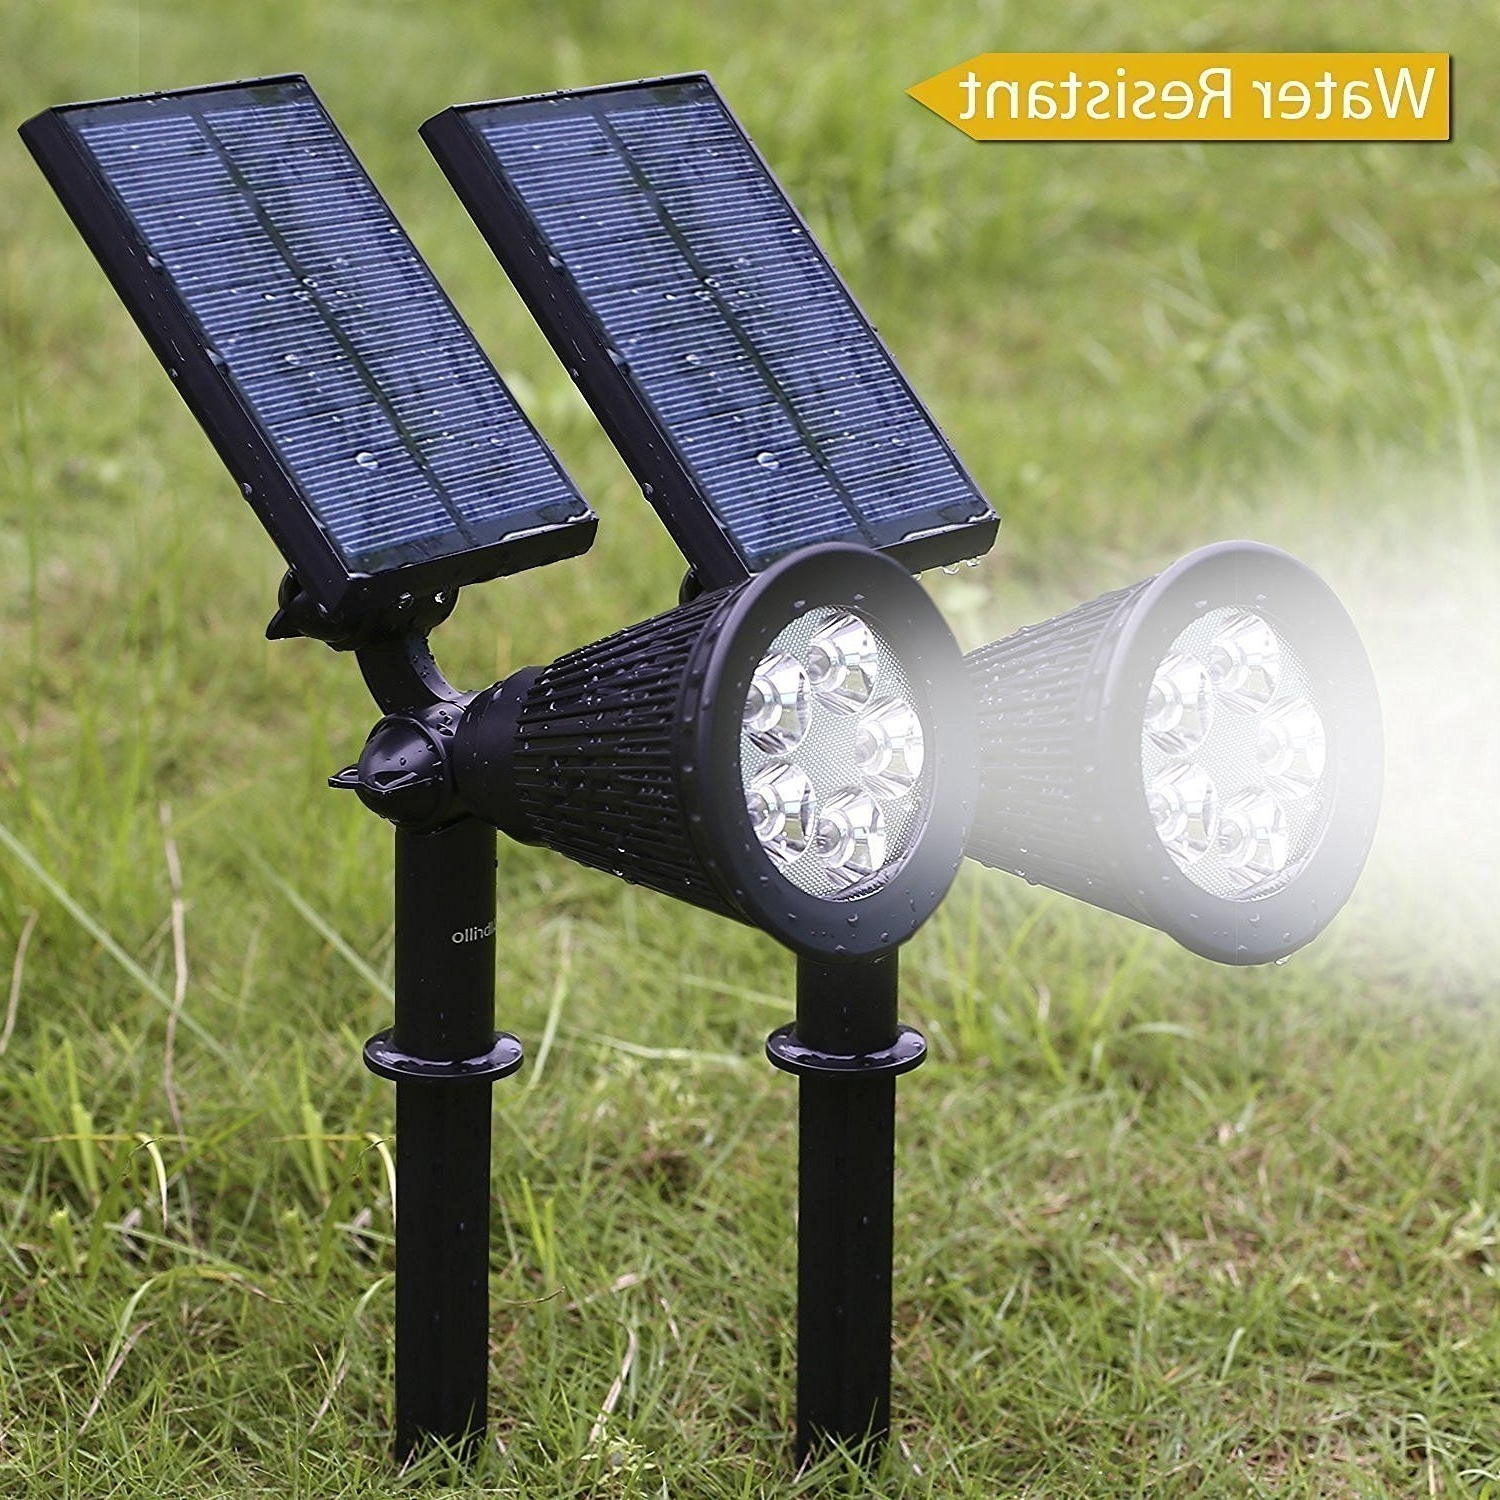 Best And Newest Outdoor Lights Amazon Best Of Albrillo 5 Led Solar Powered Spotlight For Outdoor Lanterns At Amazon (Gallery 5 of 20)